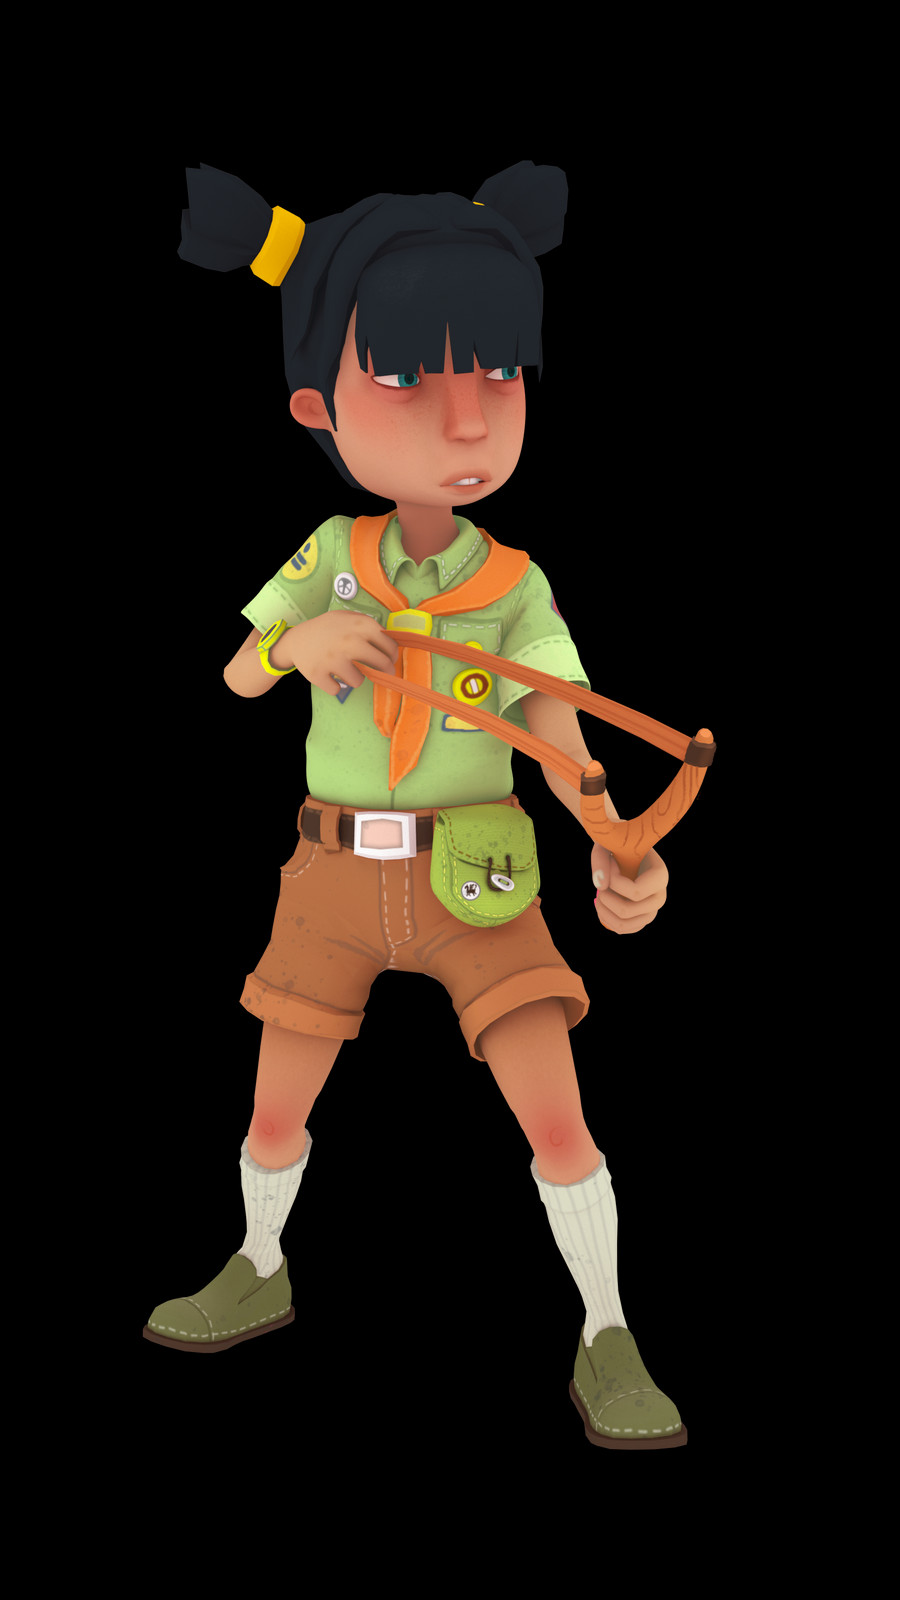 SN_Promo_Scout (2).png